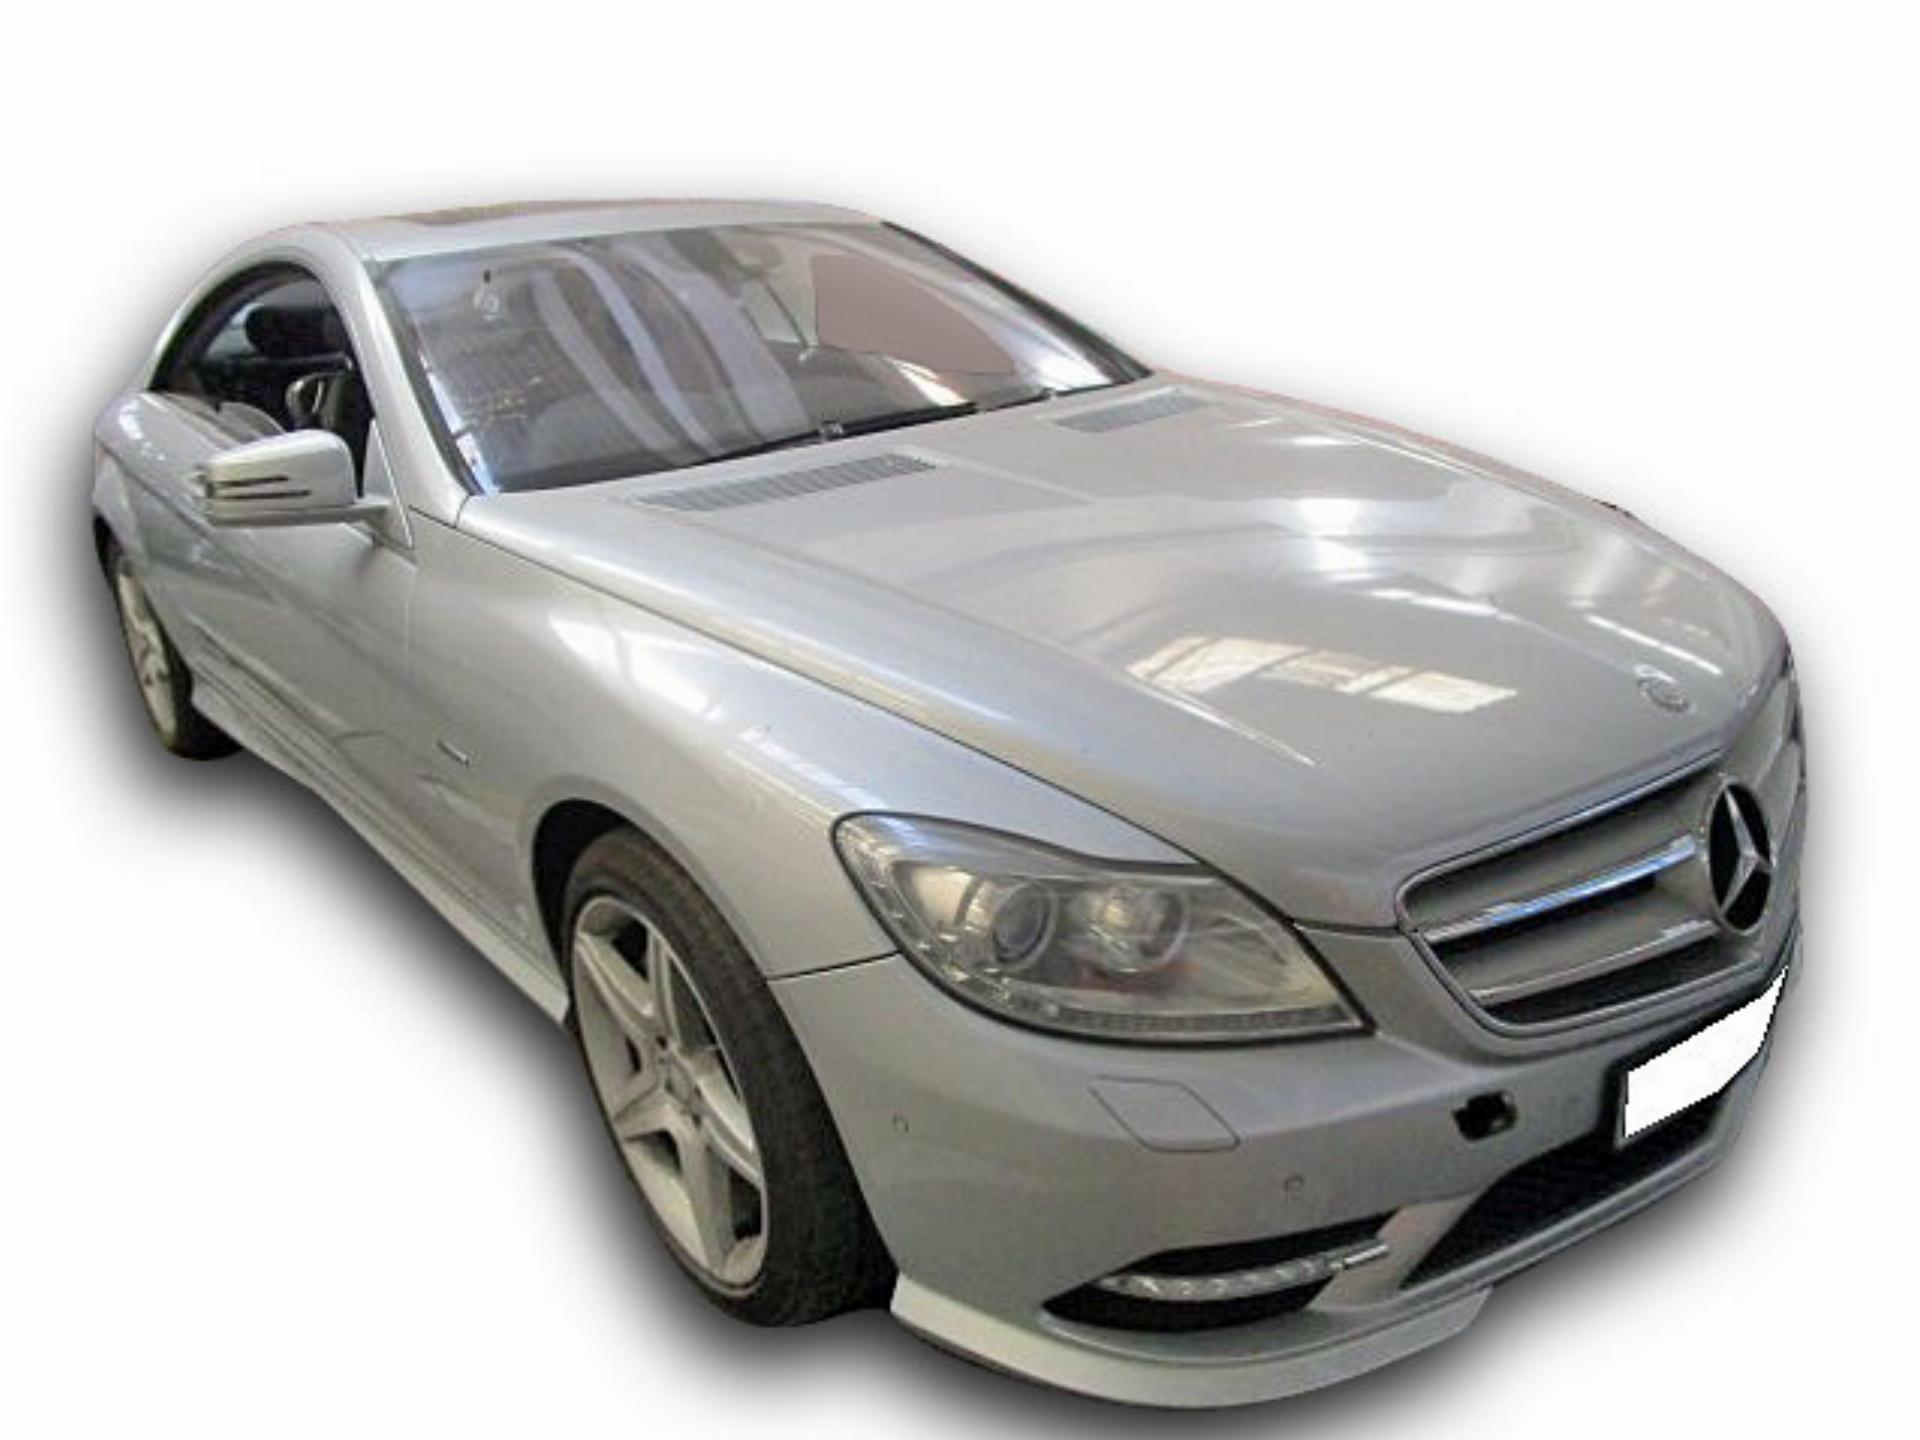 Mercedes Benz CL 500 4.6 BI T